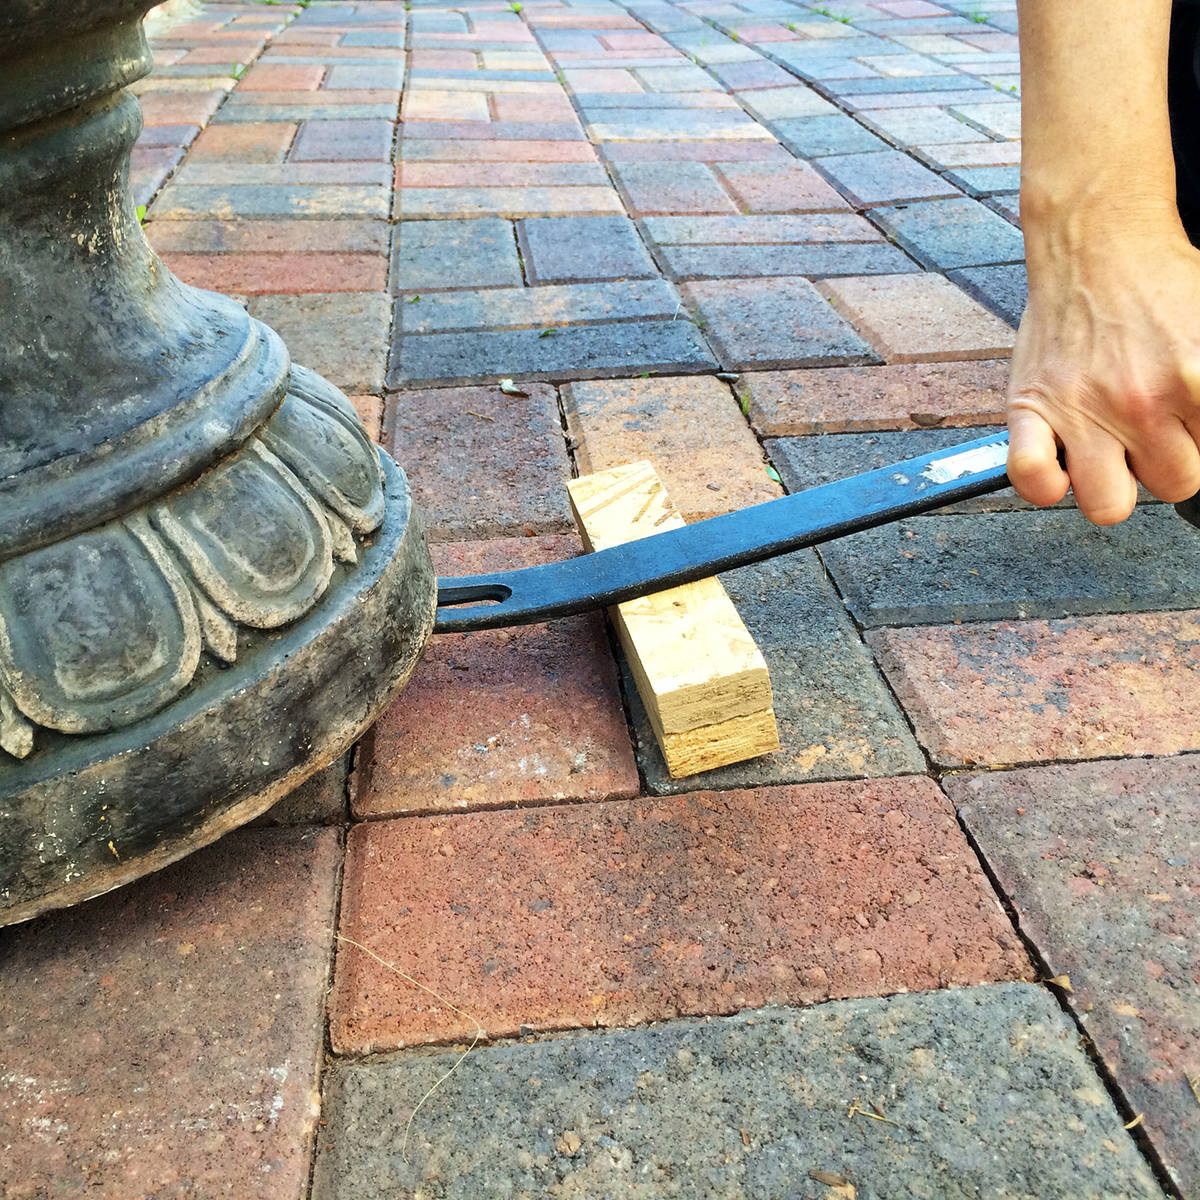 (Norma Vally) Using a fulcrum point creates leverage that makes lifting heavy items shockingly ...